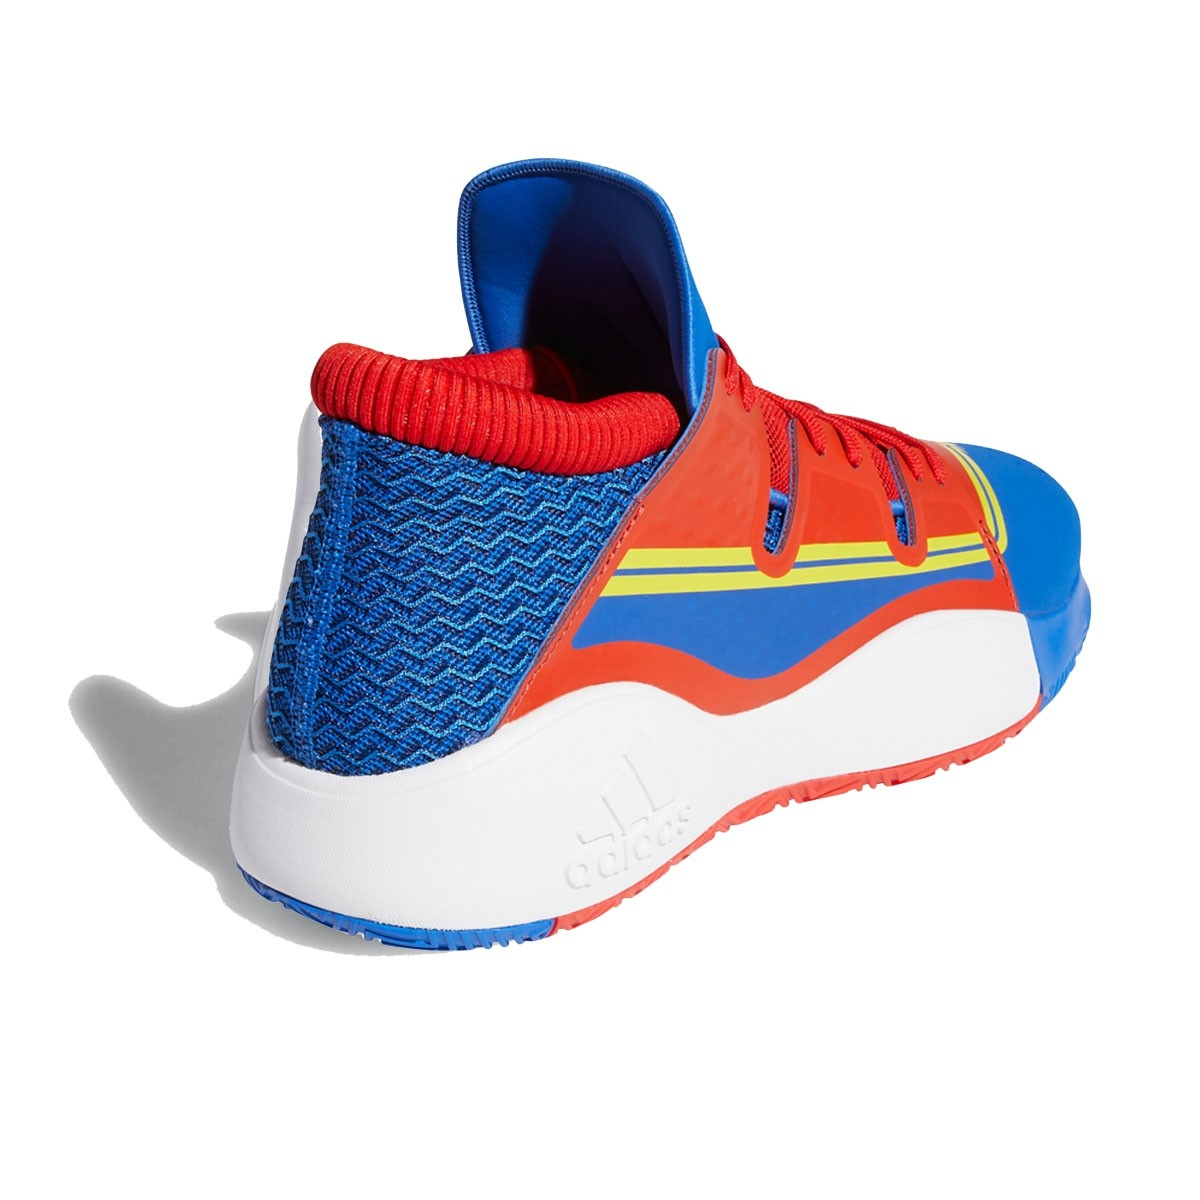 6f211d5f6360 Buy ADIDAS Pro Vision  Captain Marvel  Basketball shoes   sneakers